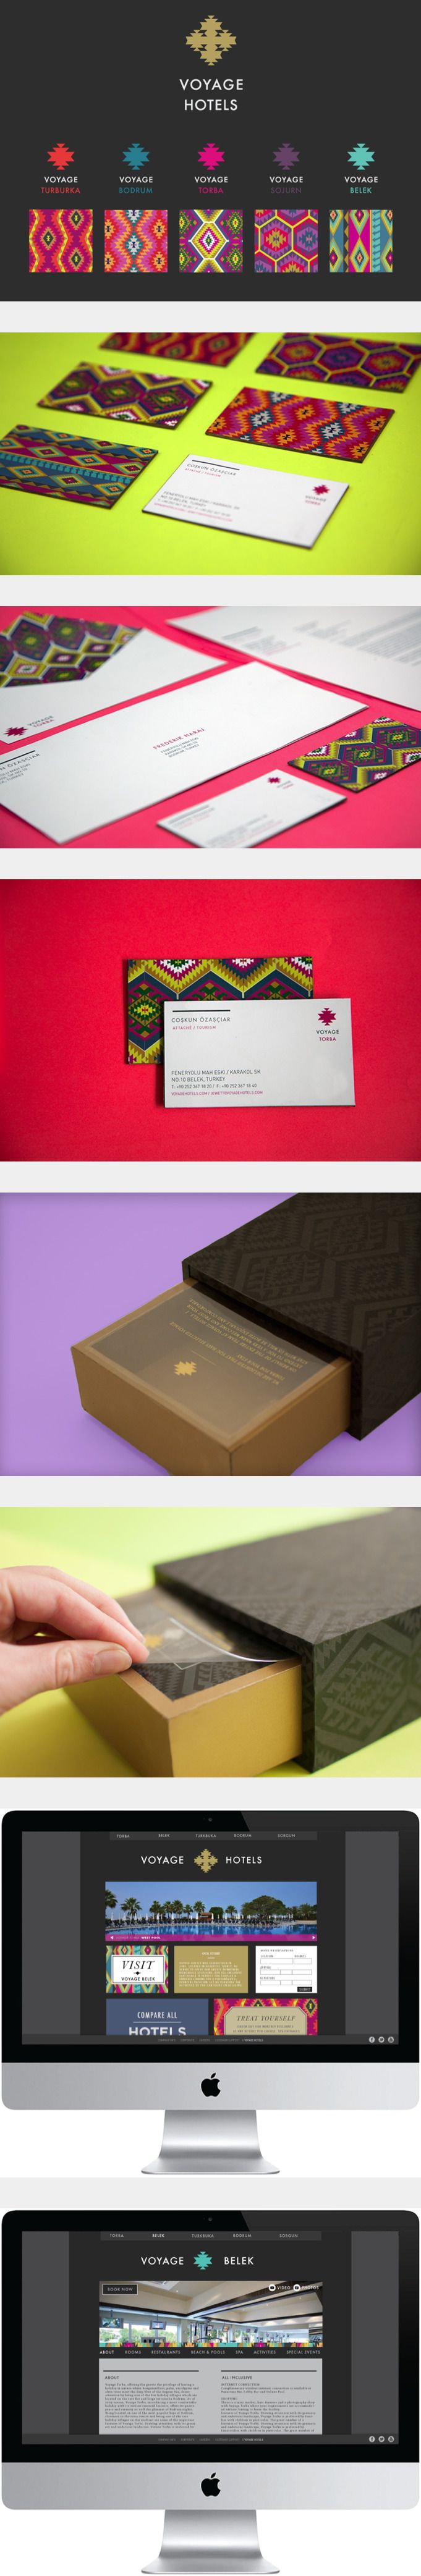 Voyage Hotels by Lacy Kuhn. Love the use of pattern on the business cards